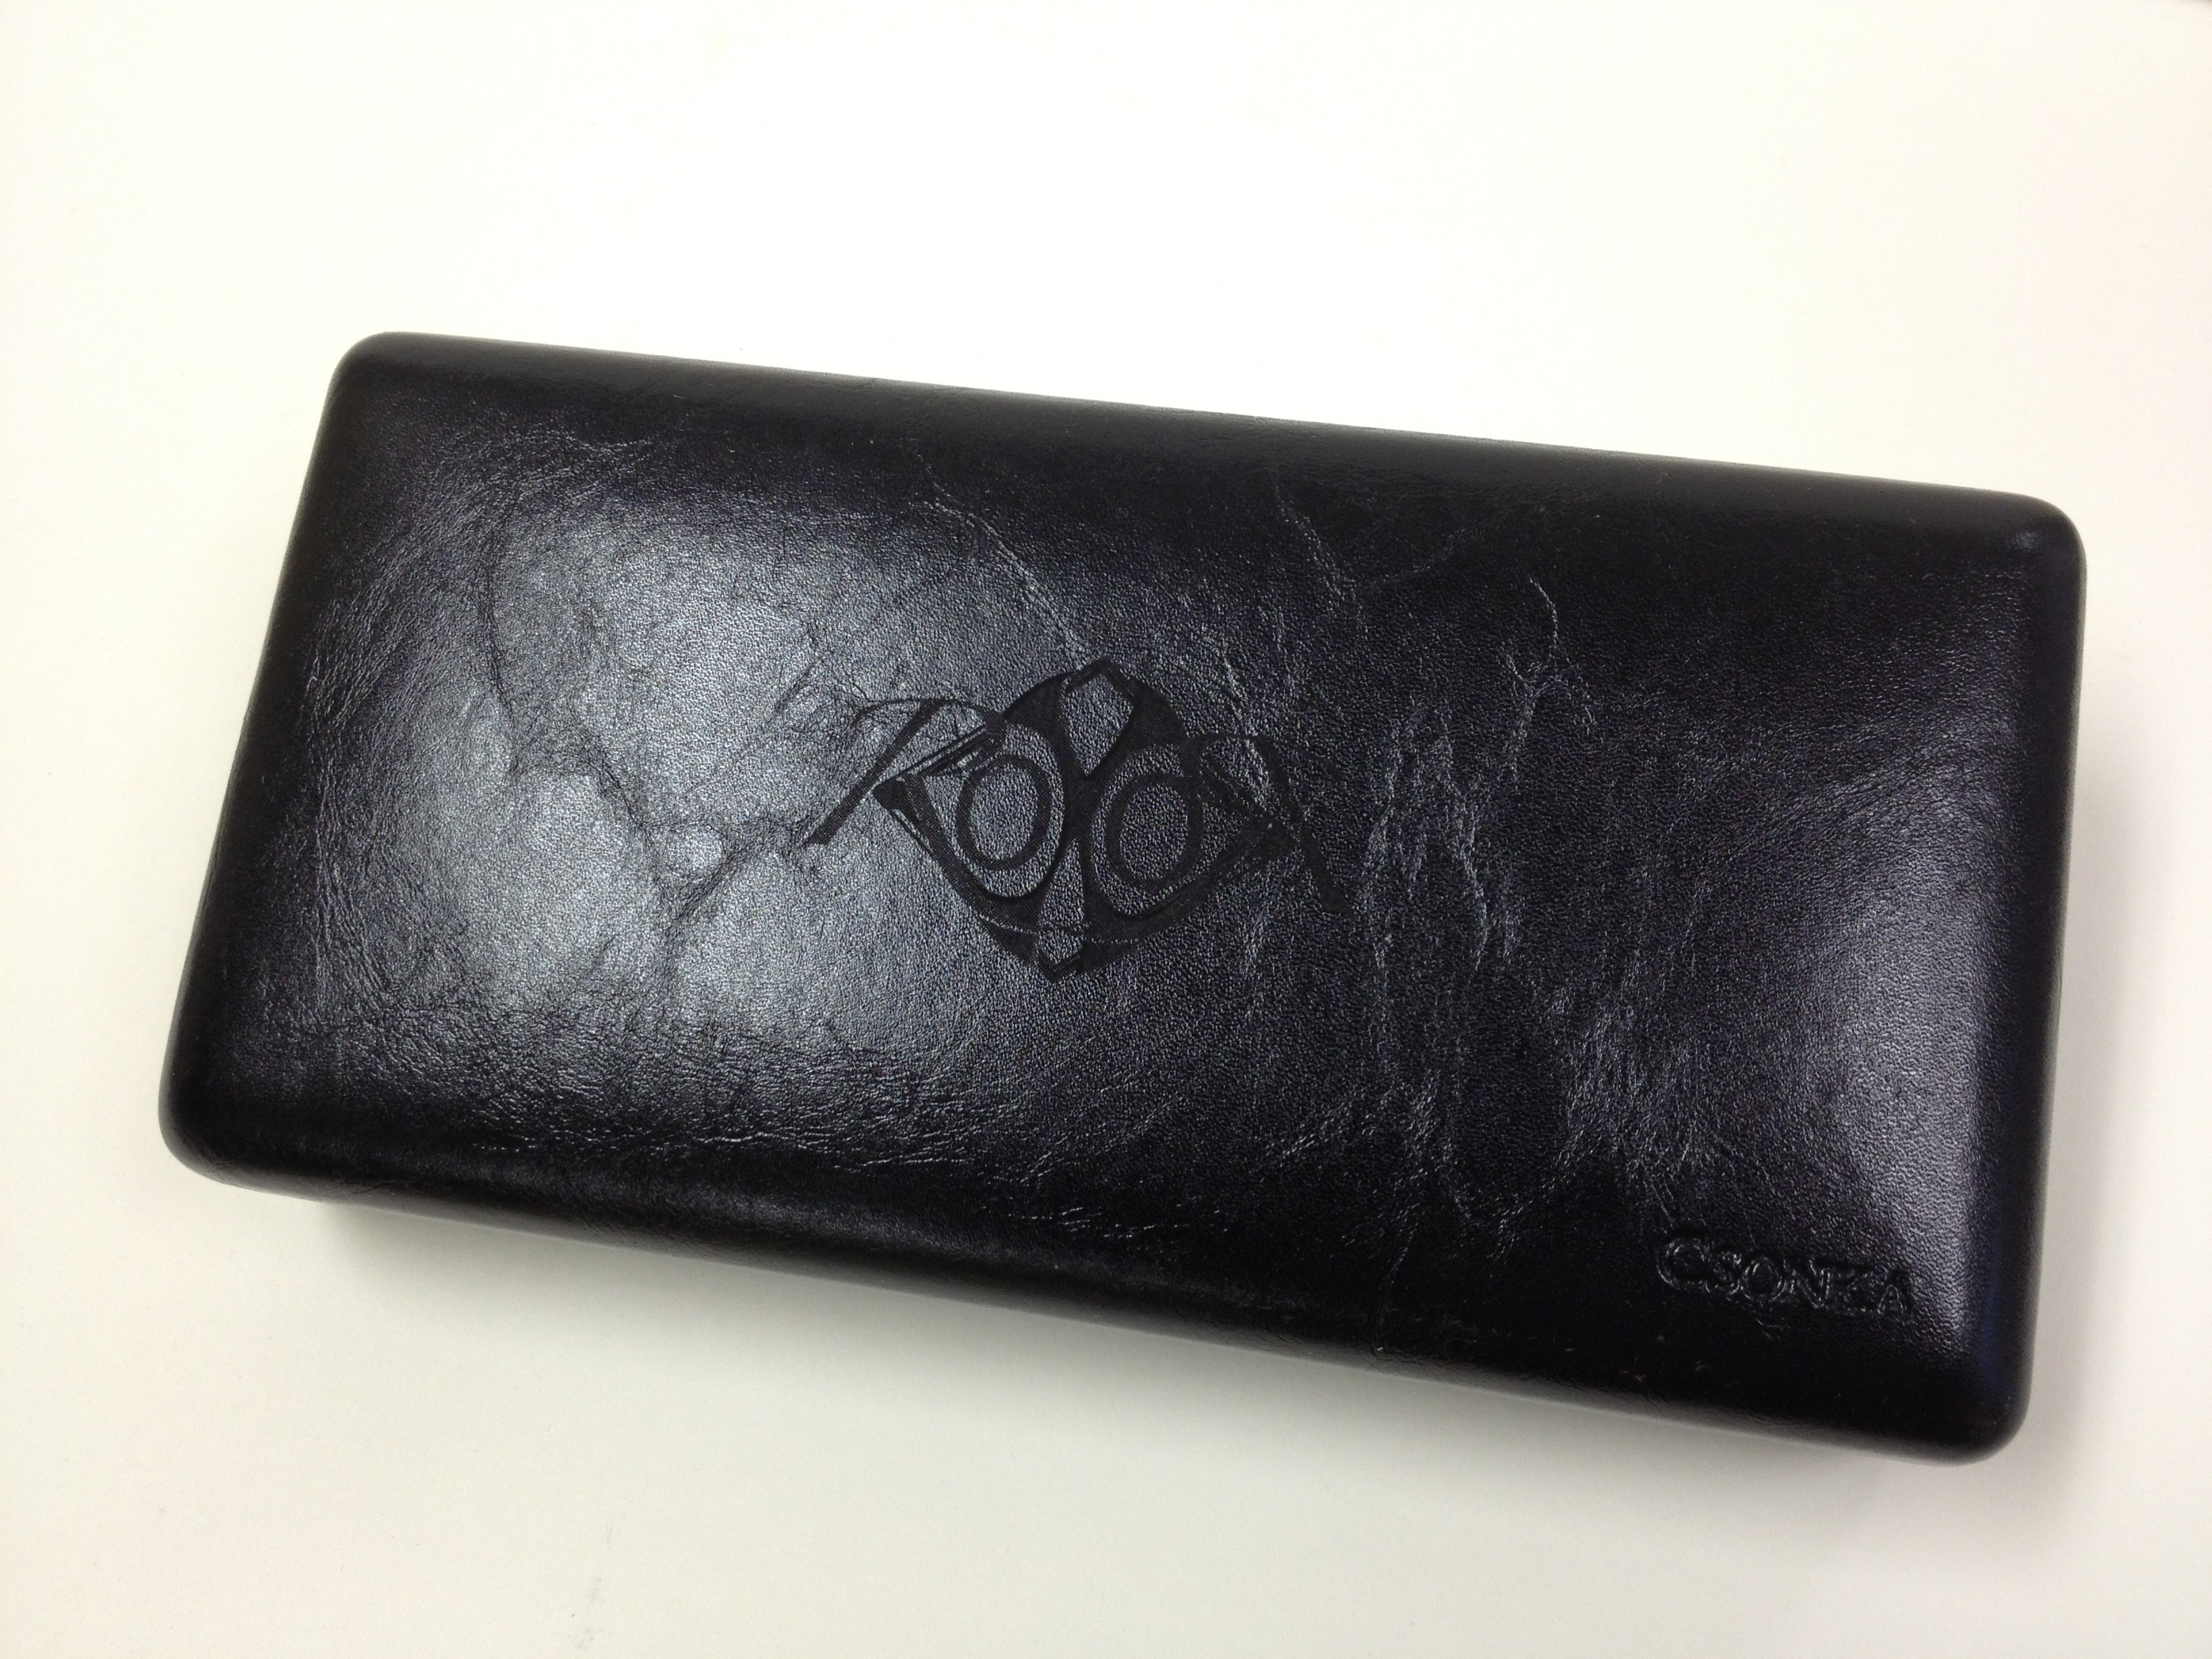 Roxor Deluxe Connecticut Leather Travel Case - Black Leather